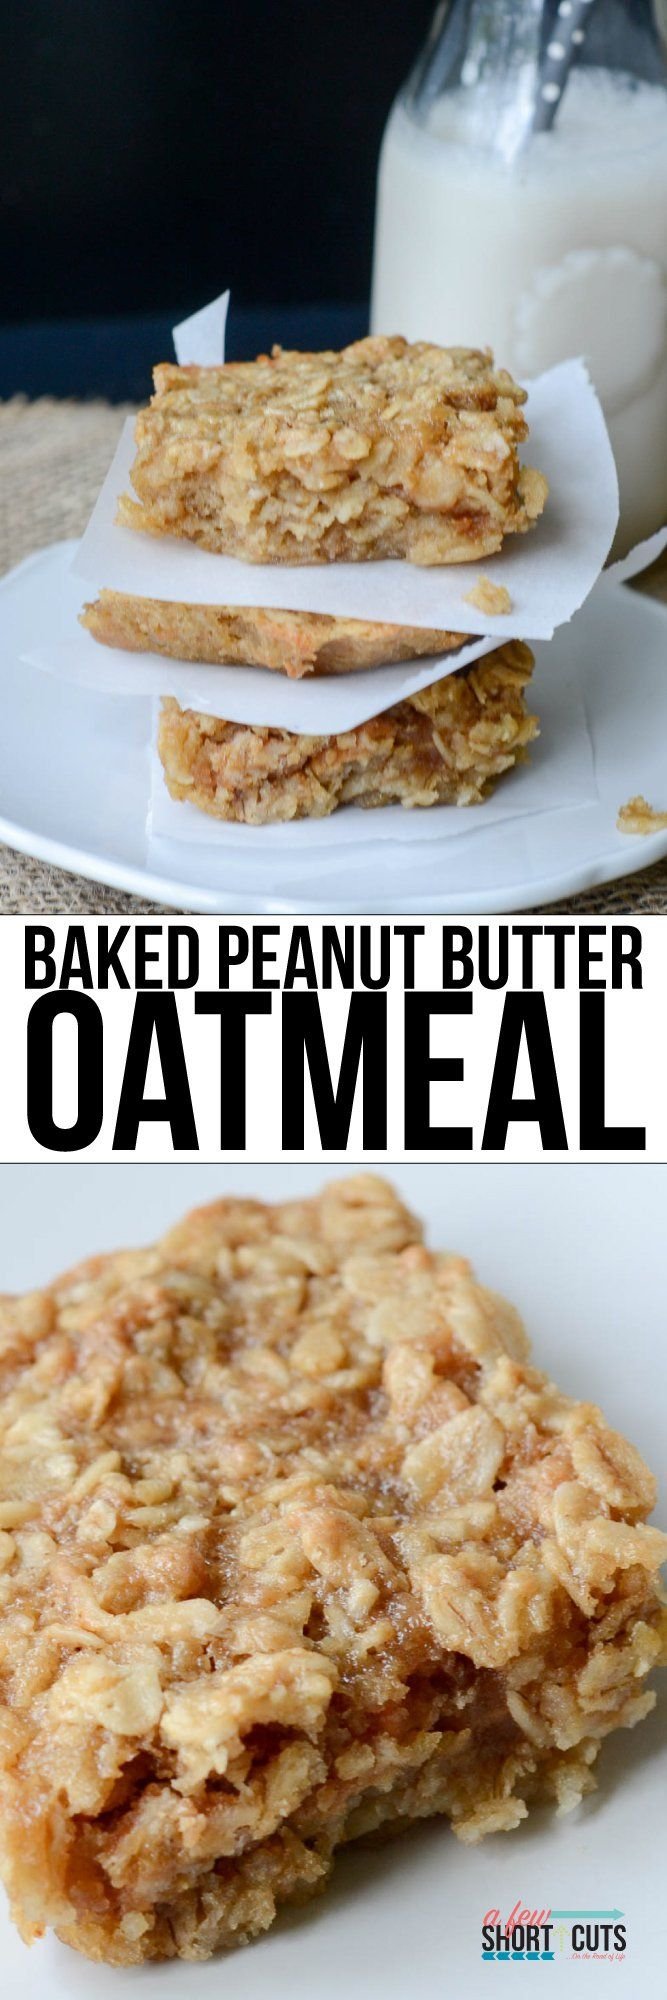 This Baked Peanut Butter Oatmeal Recipe is a winner! Can be made gluten free & dairy free too!